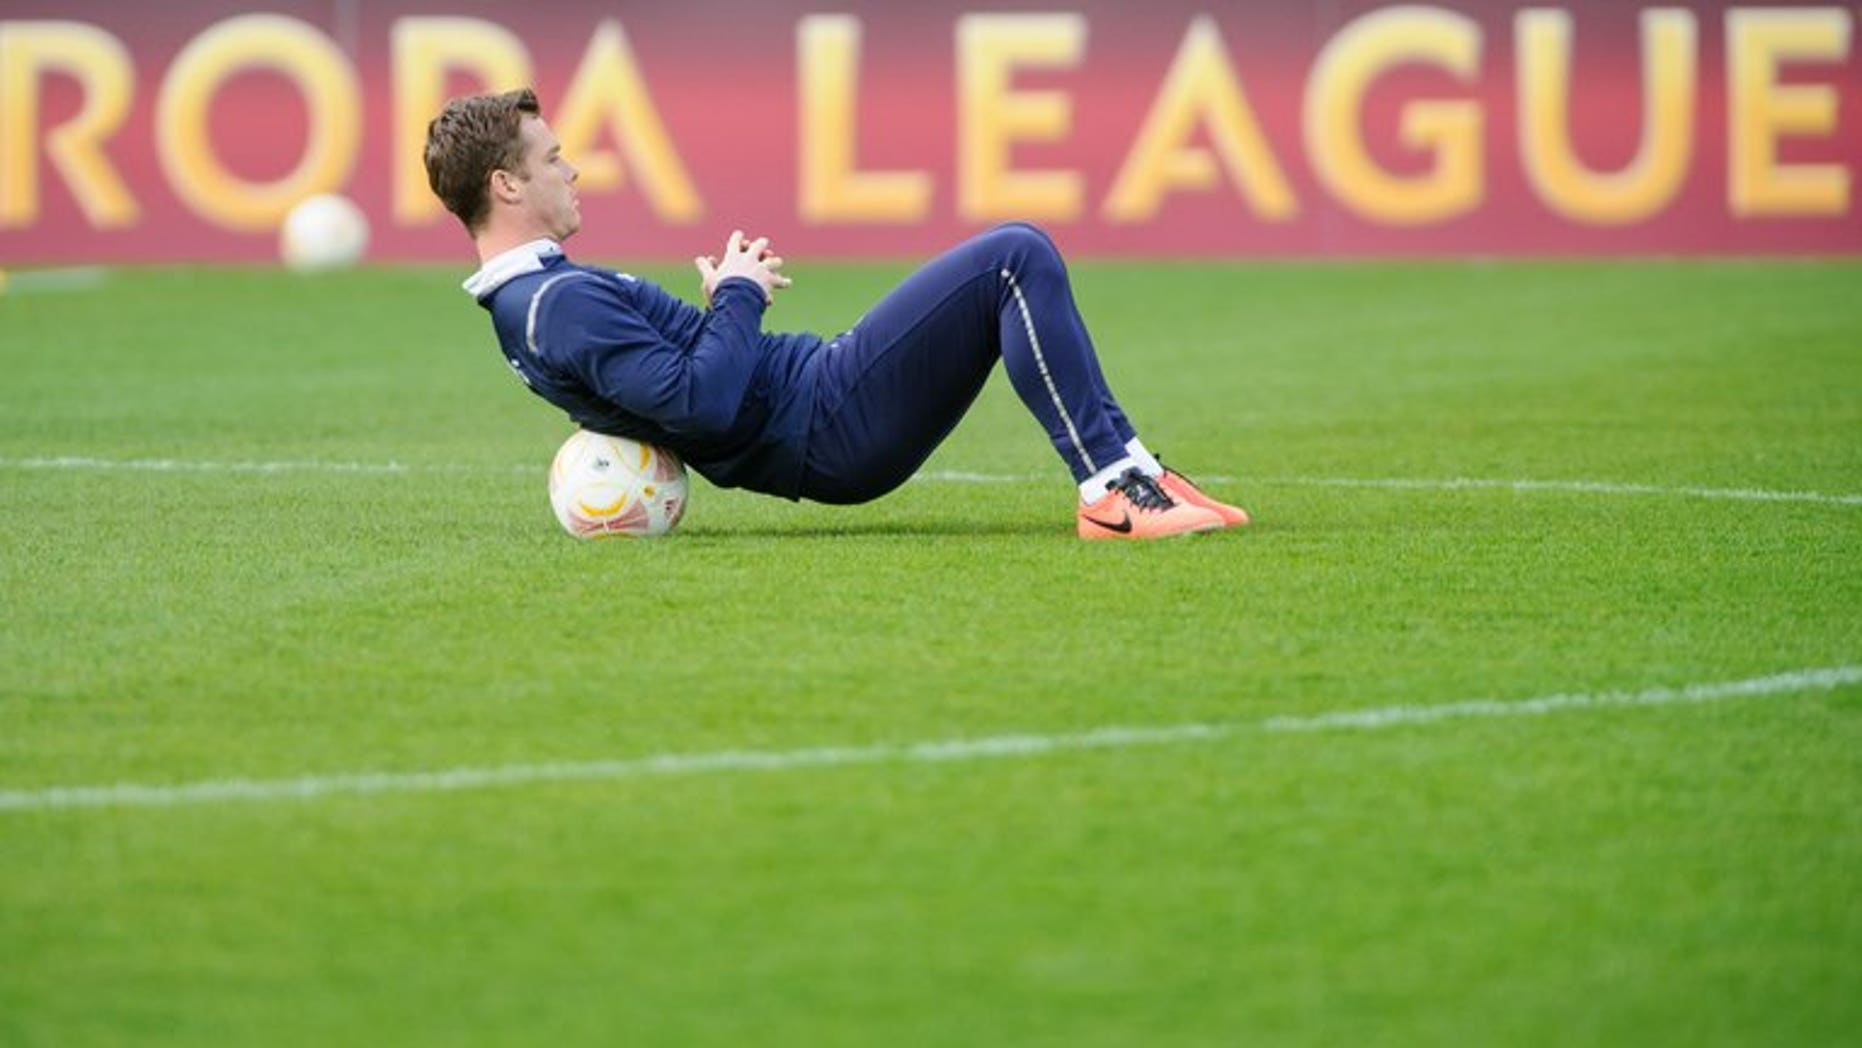 Scott Parker stretches during a training session at the Saint Jakok stadium in Basel on April 10, 2013. Fulham signed England midfielder Parker from Tottenham for an undisclosed fee on Monday.